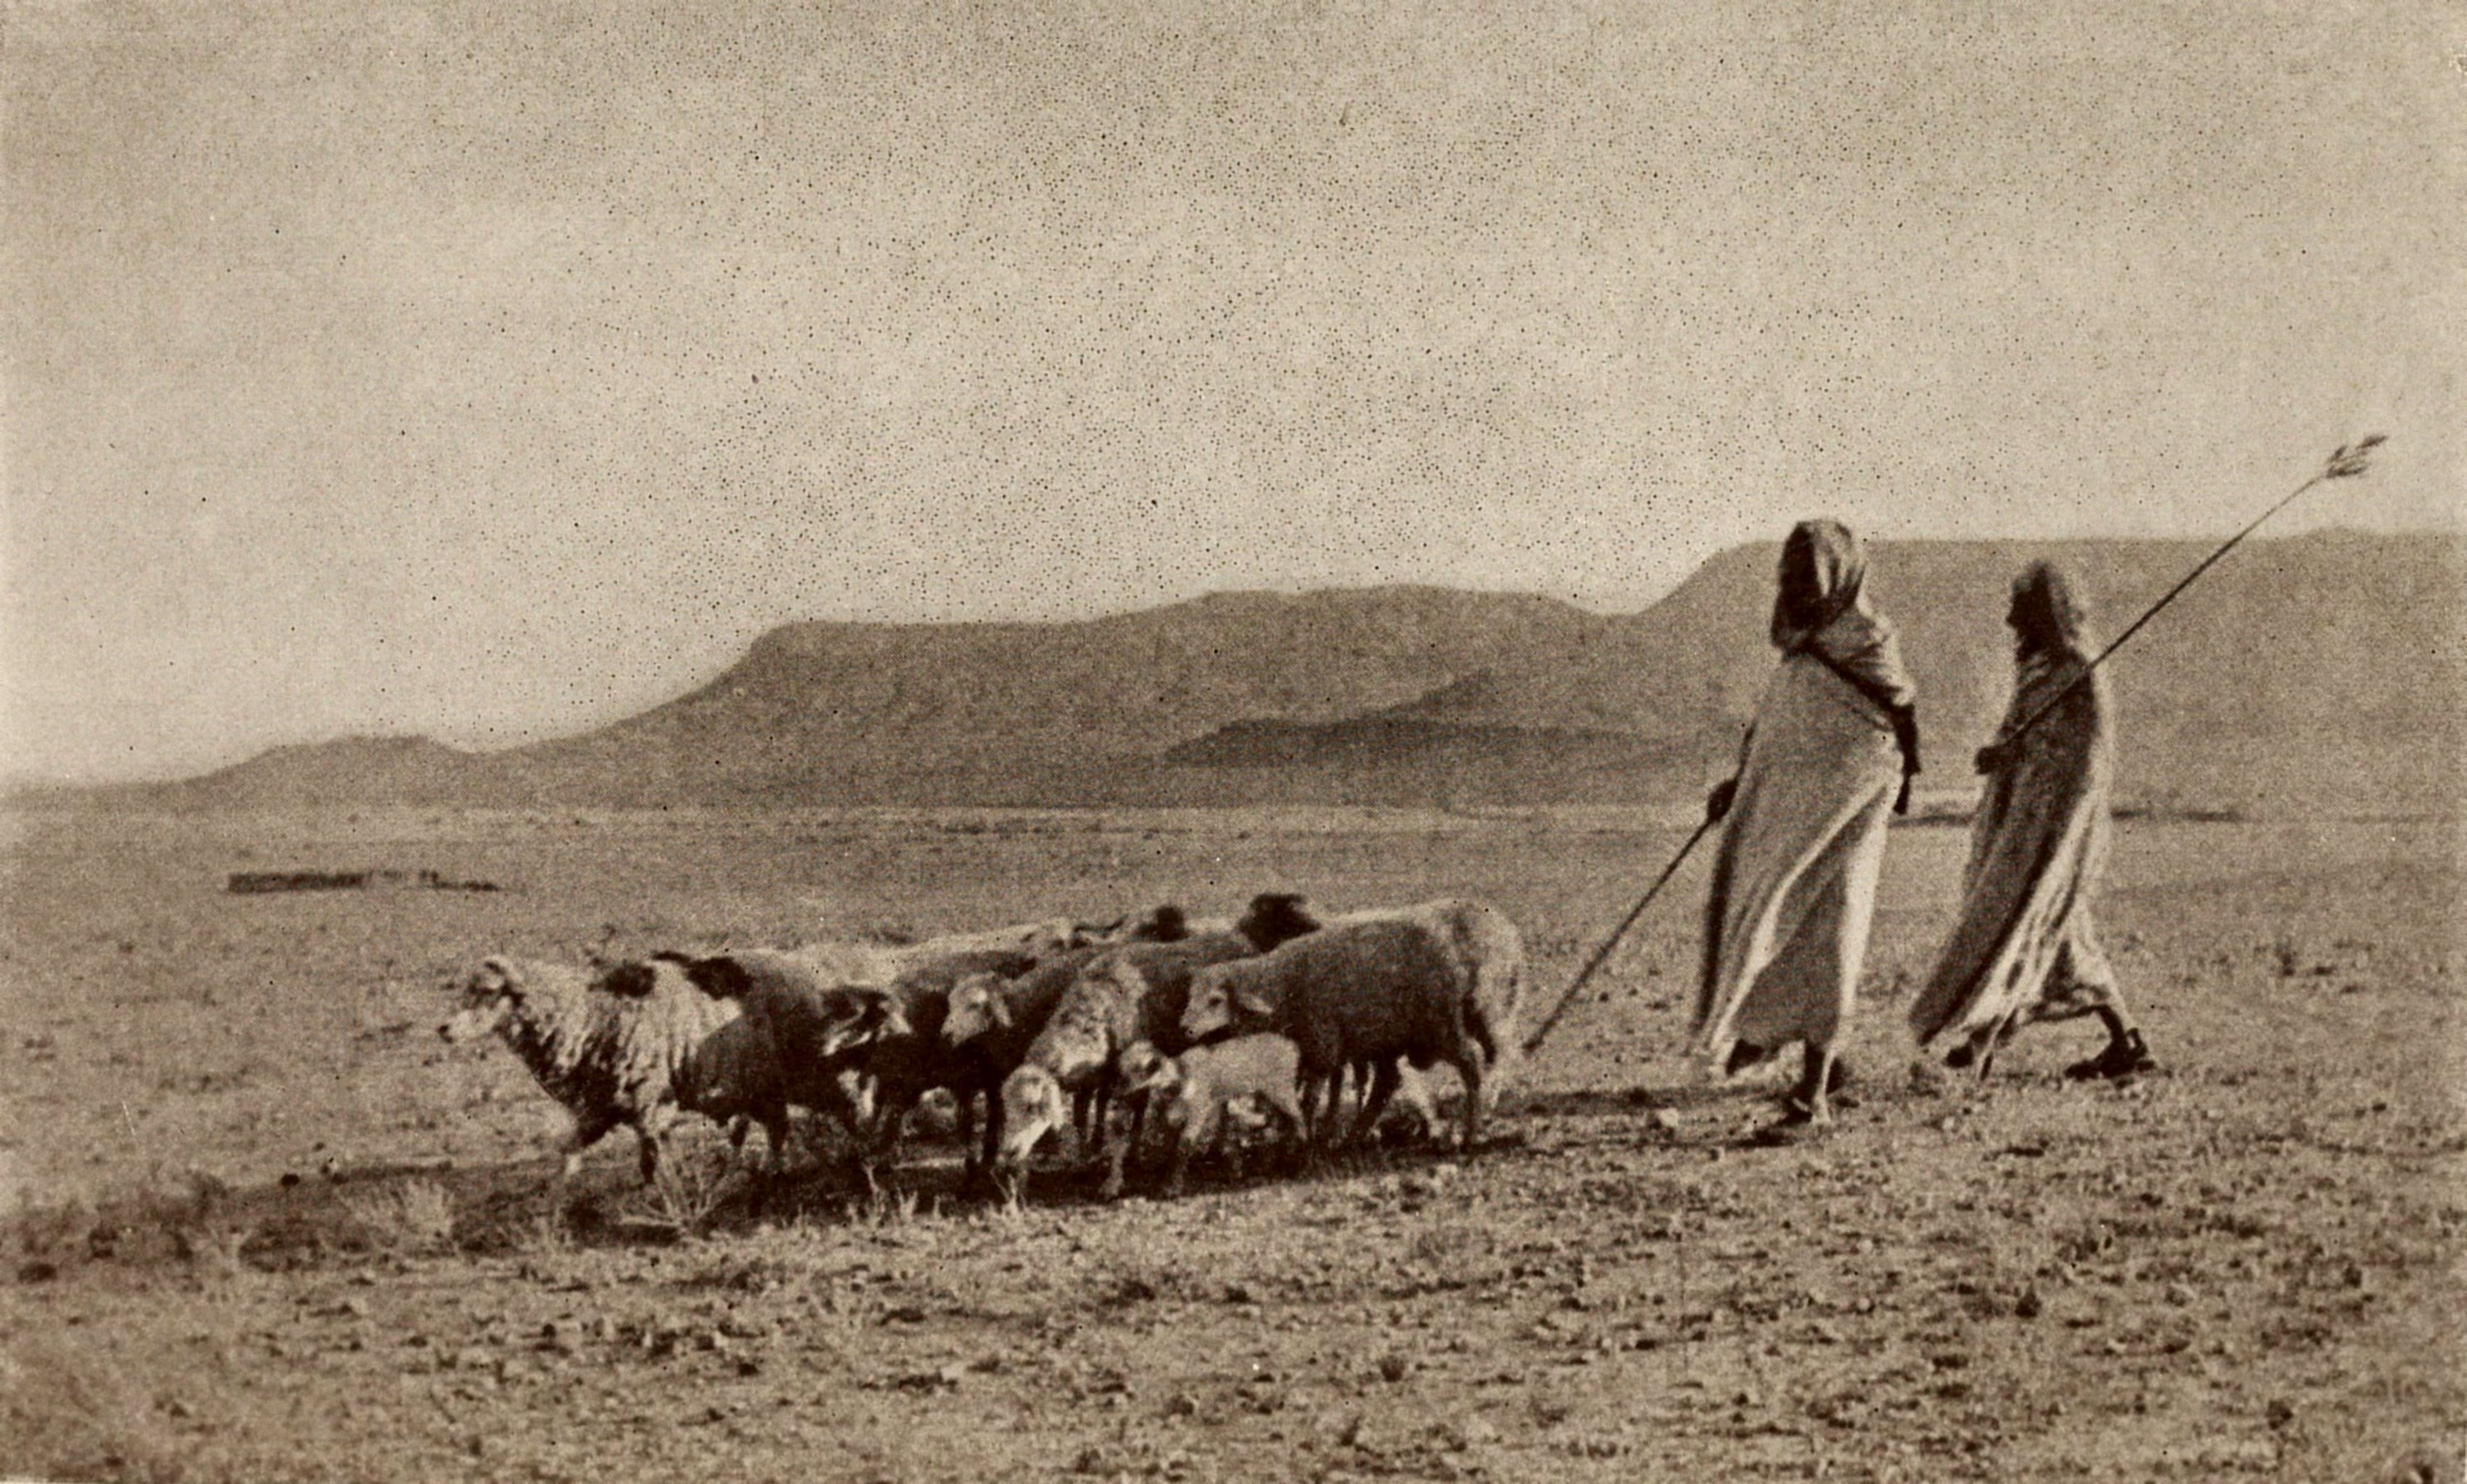 An Algerian pastoral by Louis J. Steele about 1923